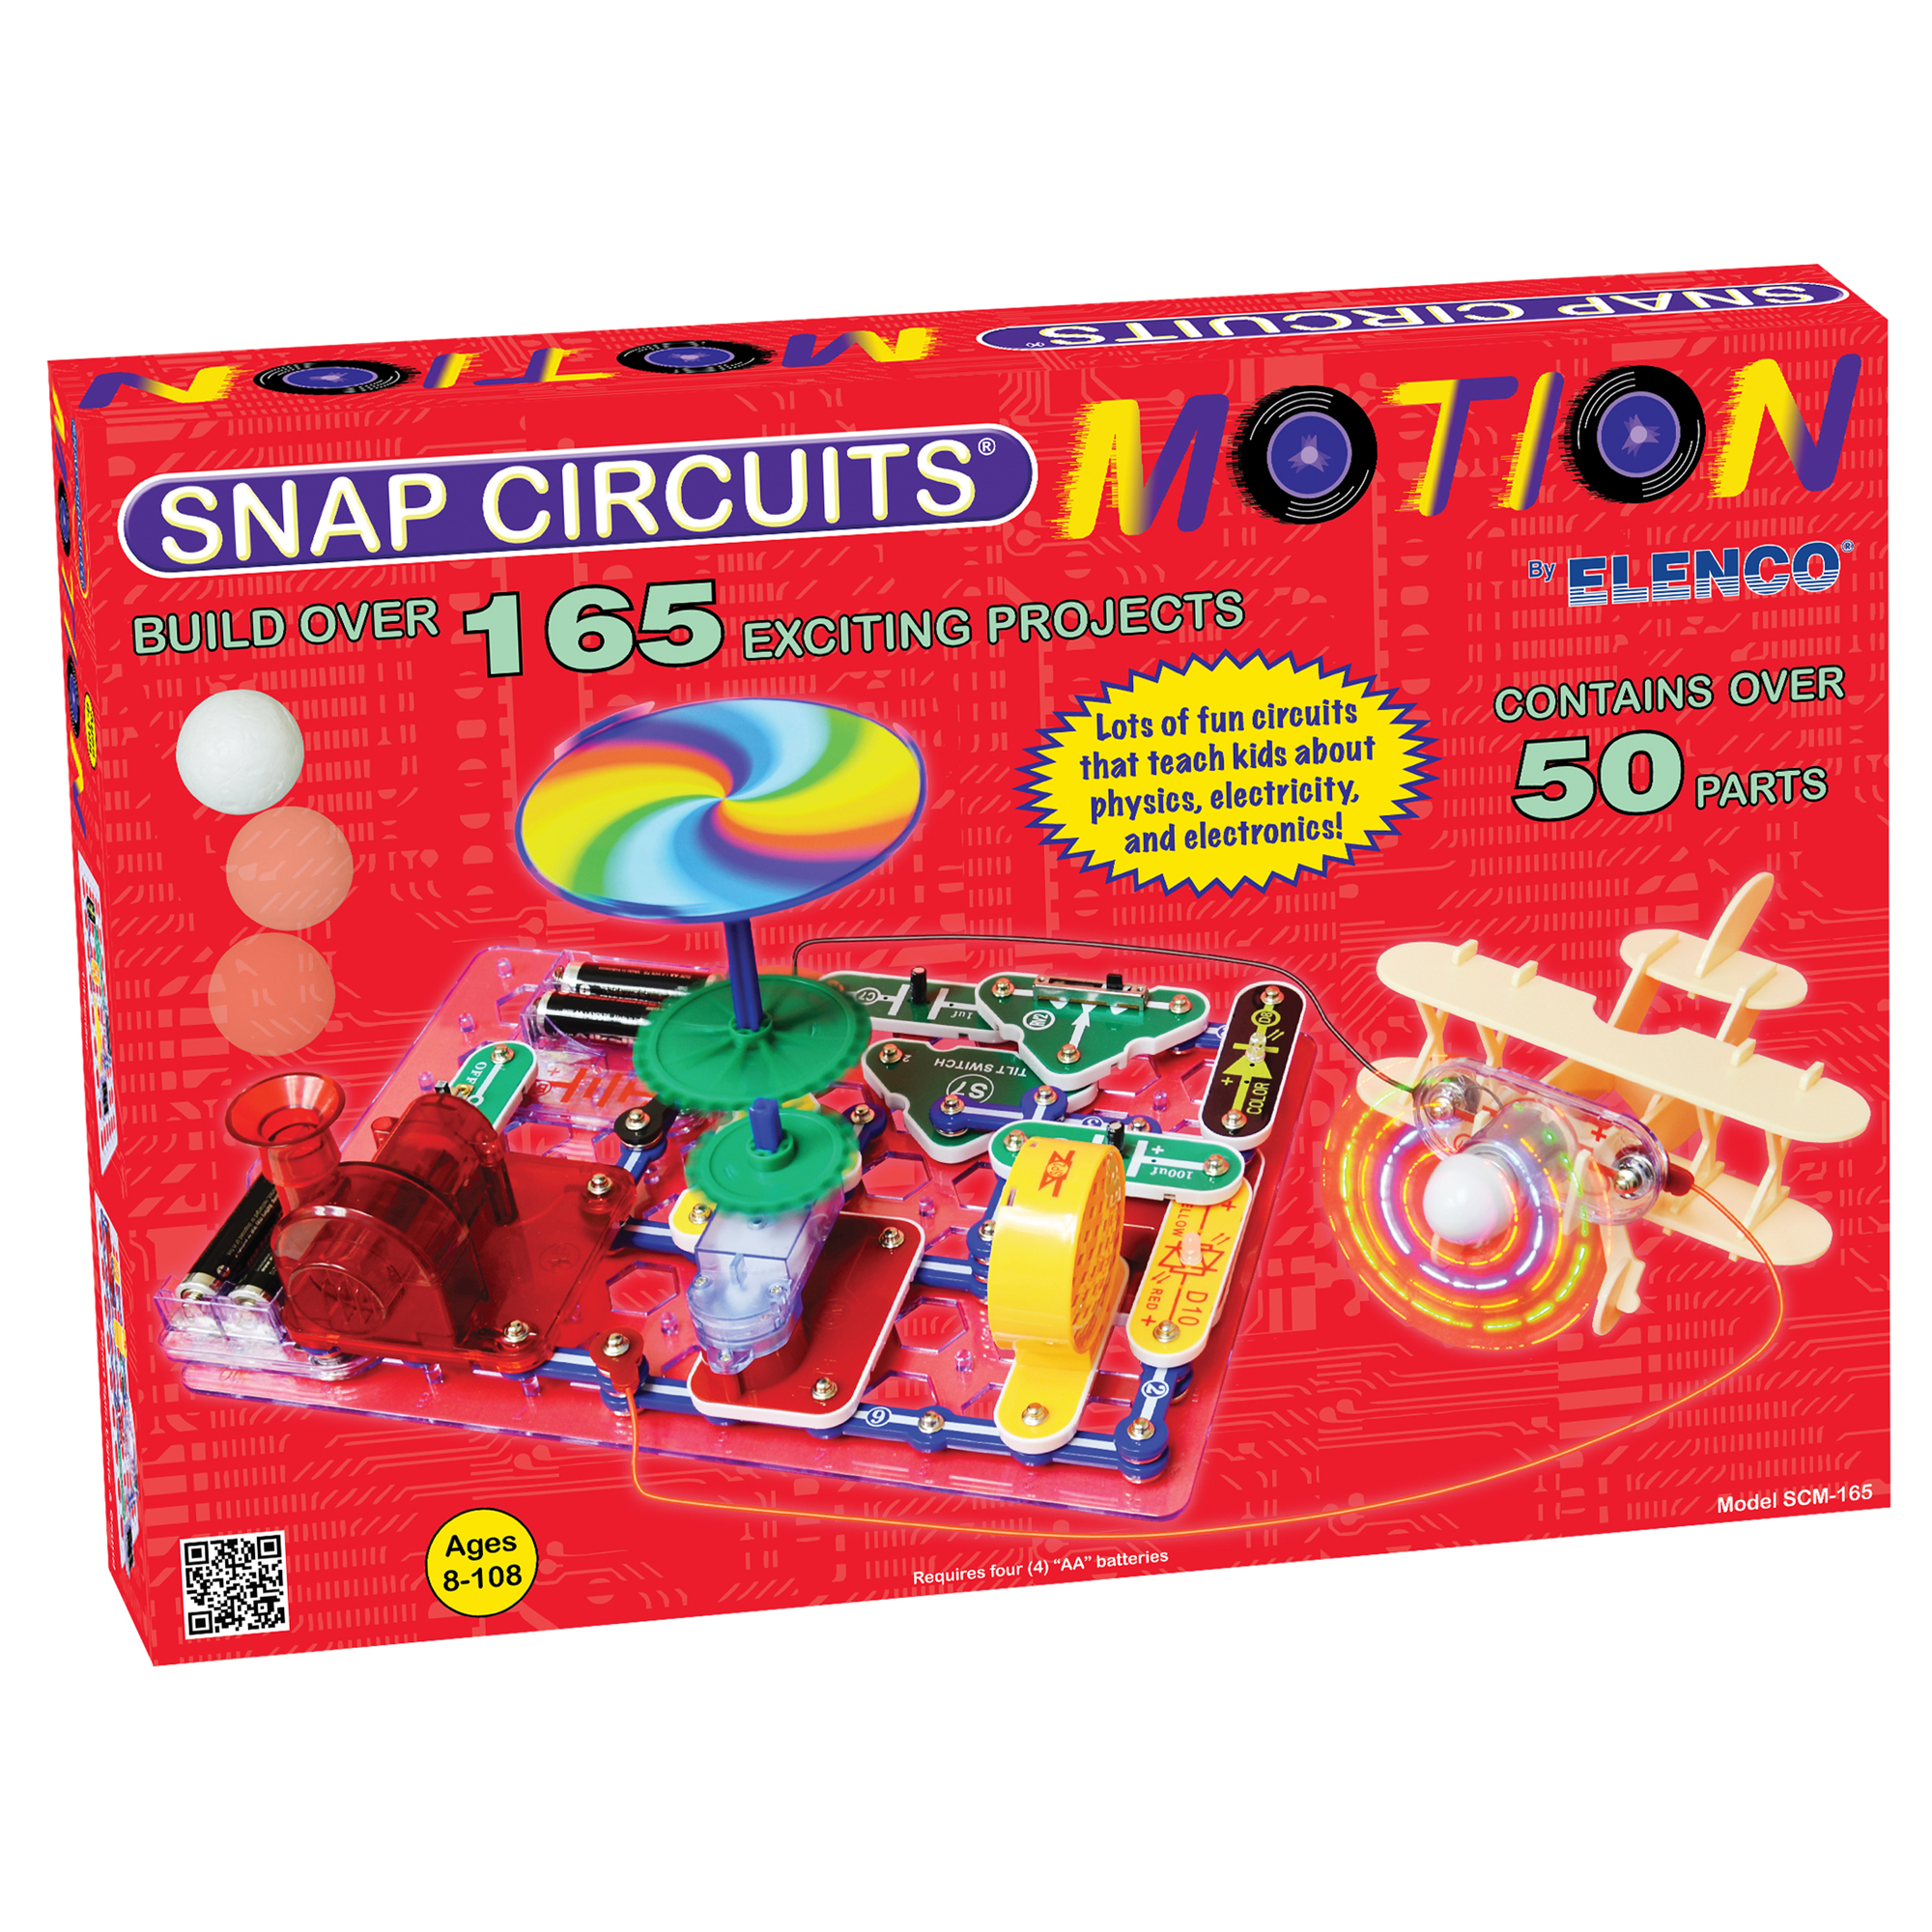 View Larger Snap Circuits Motion Geek Tattoos Sound Kit Image One Xumpcom Scm165 3 Scm 165 New